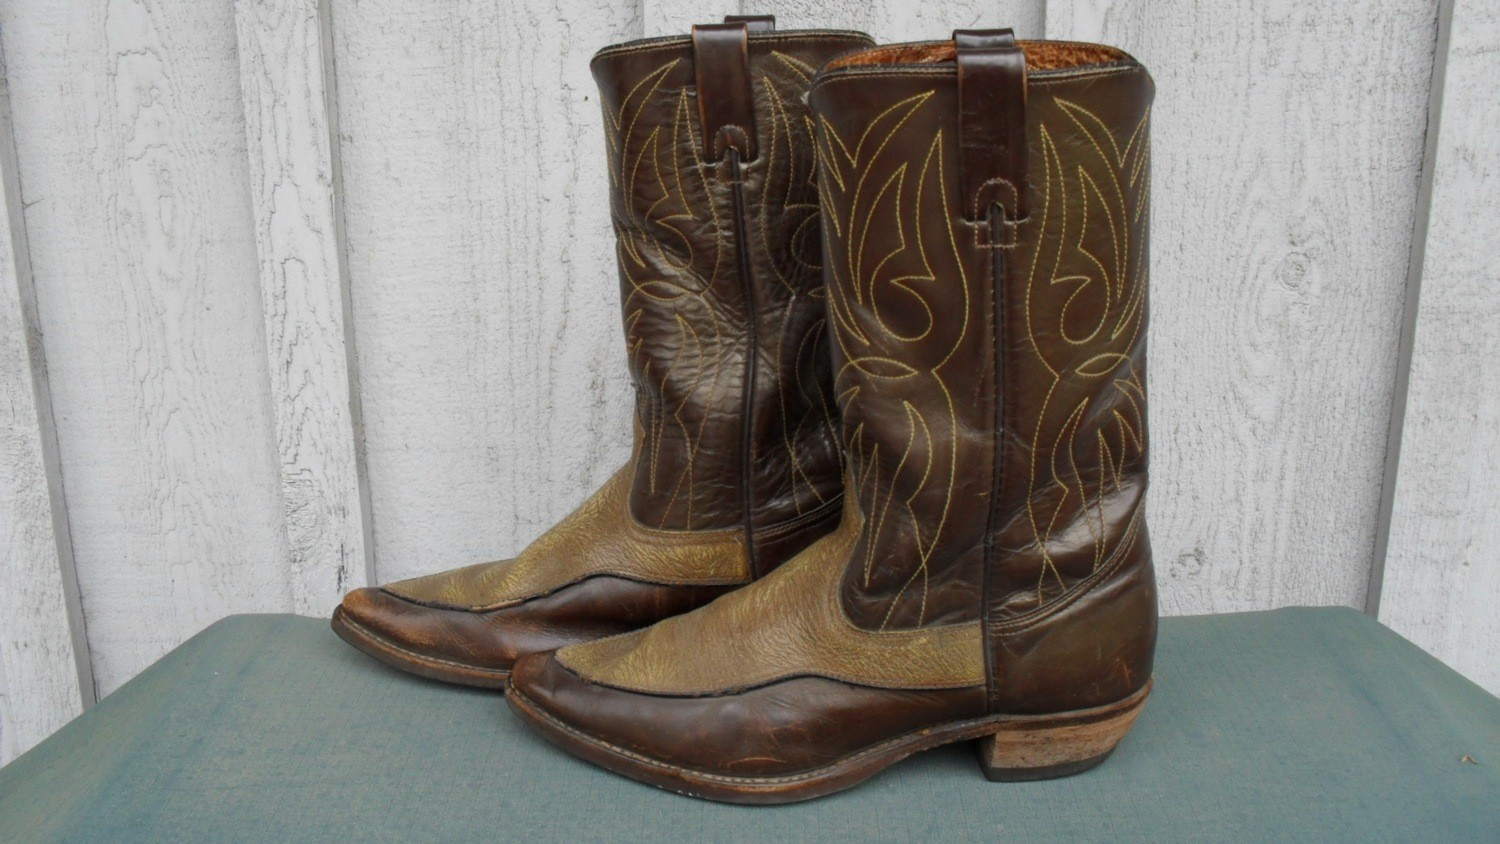 TEXAS boots that remind me why I love Robert Redford and vintage cowboy boots!